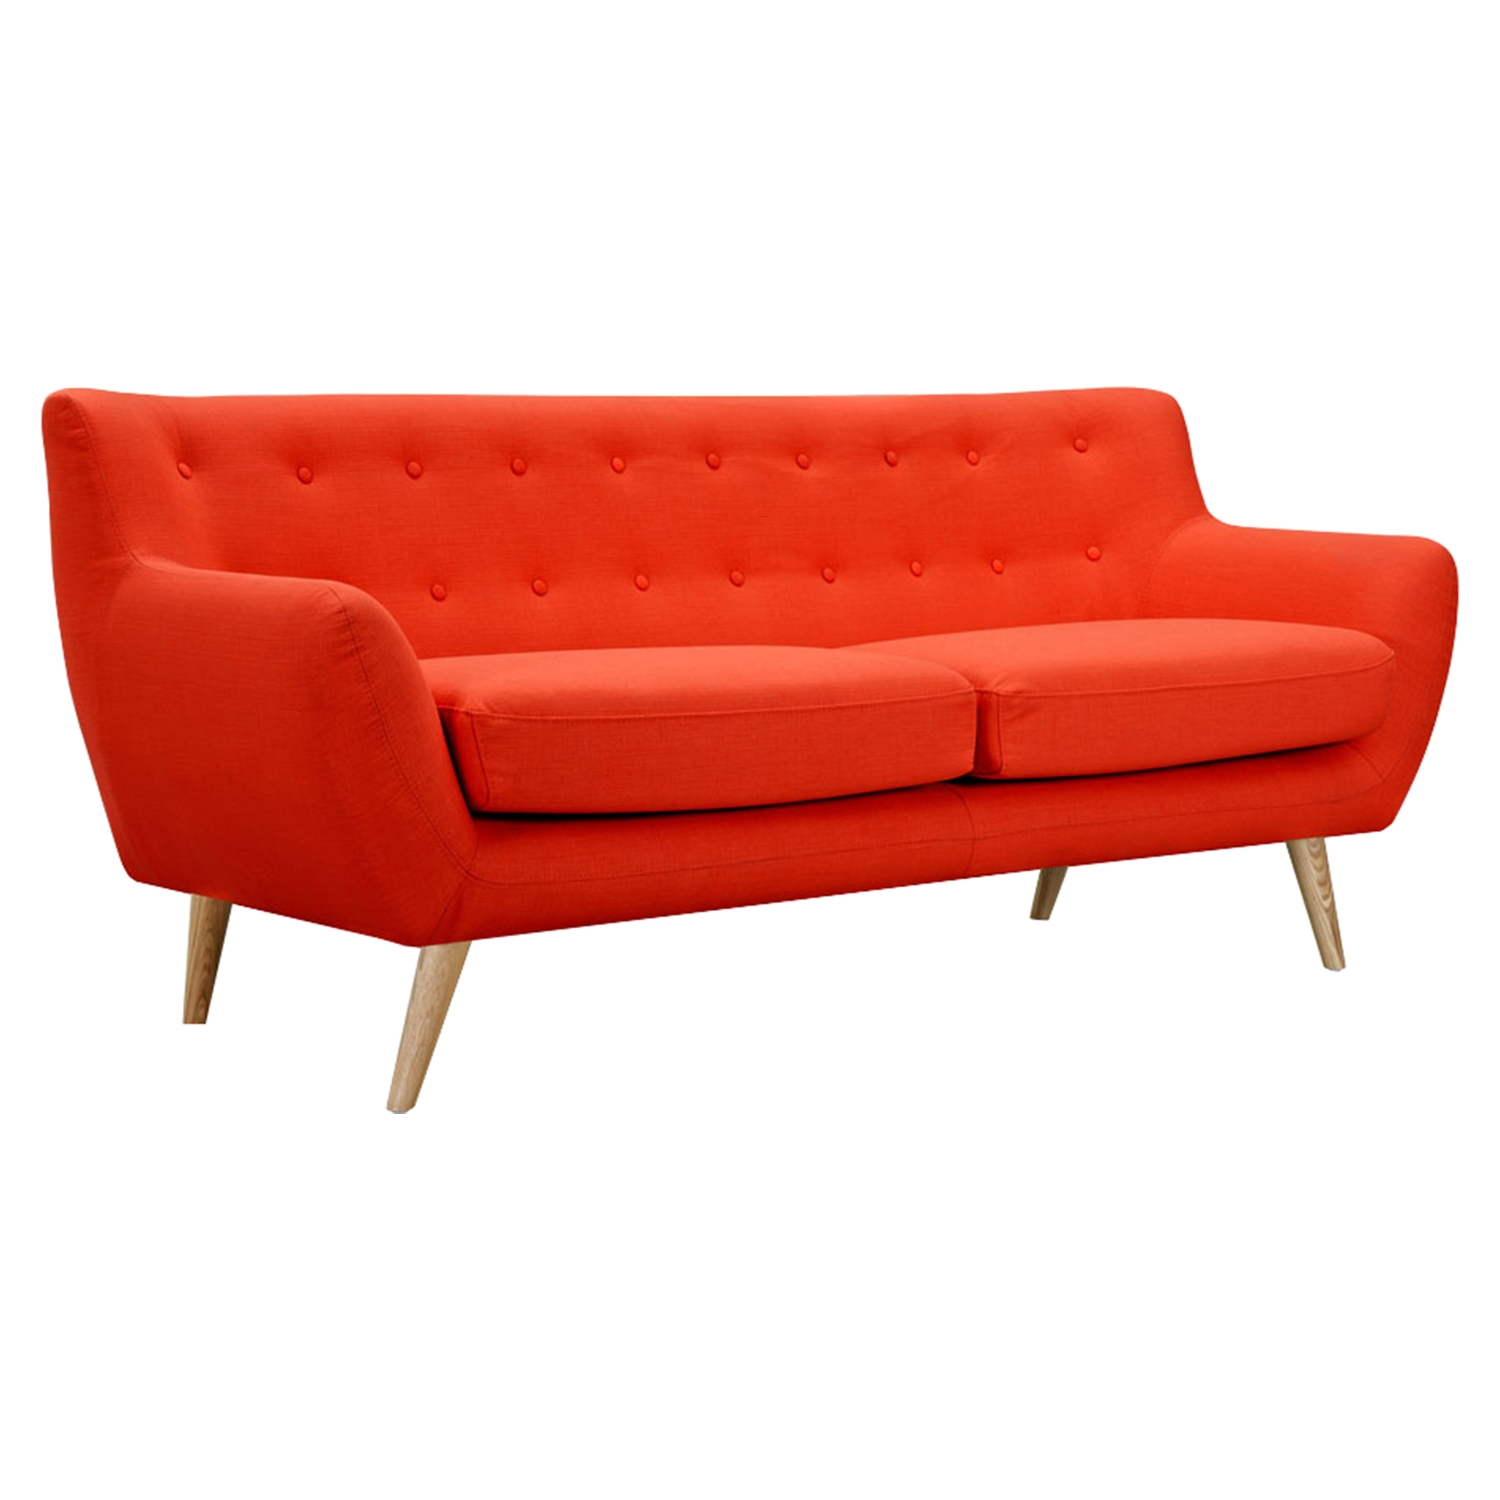 Ida Button Tufted Upholstery Sofa - Retro Orange - NYEK-223313